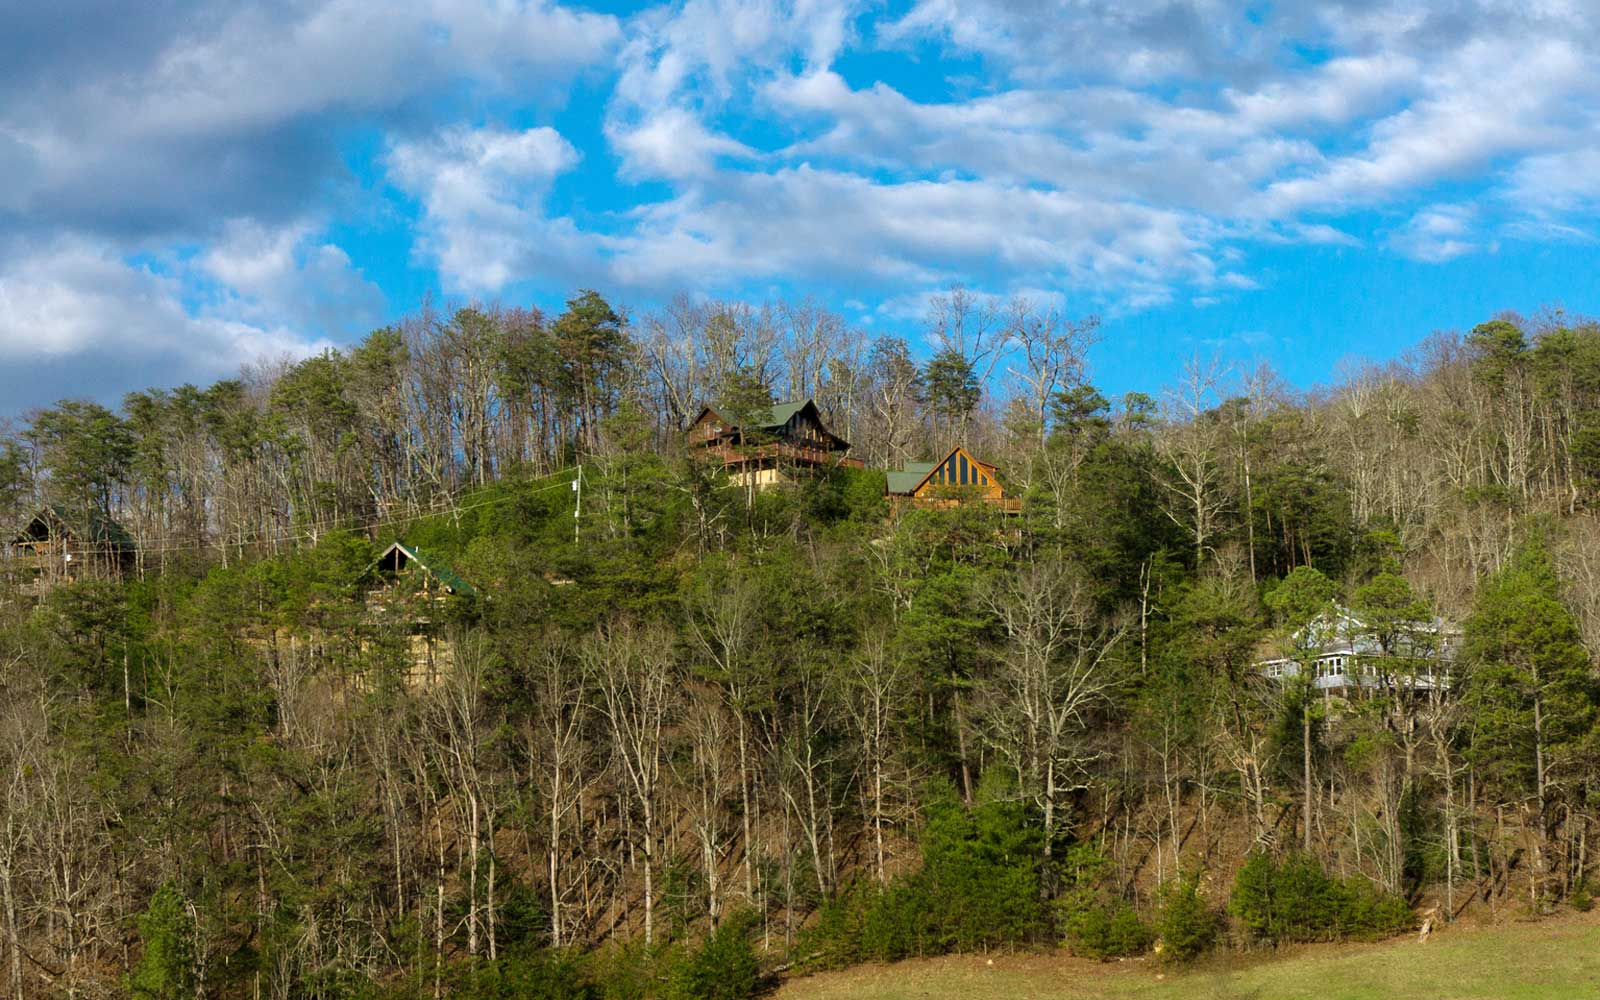 How to Find Idyllic Pigeon Forge Cabin Rentals